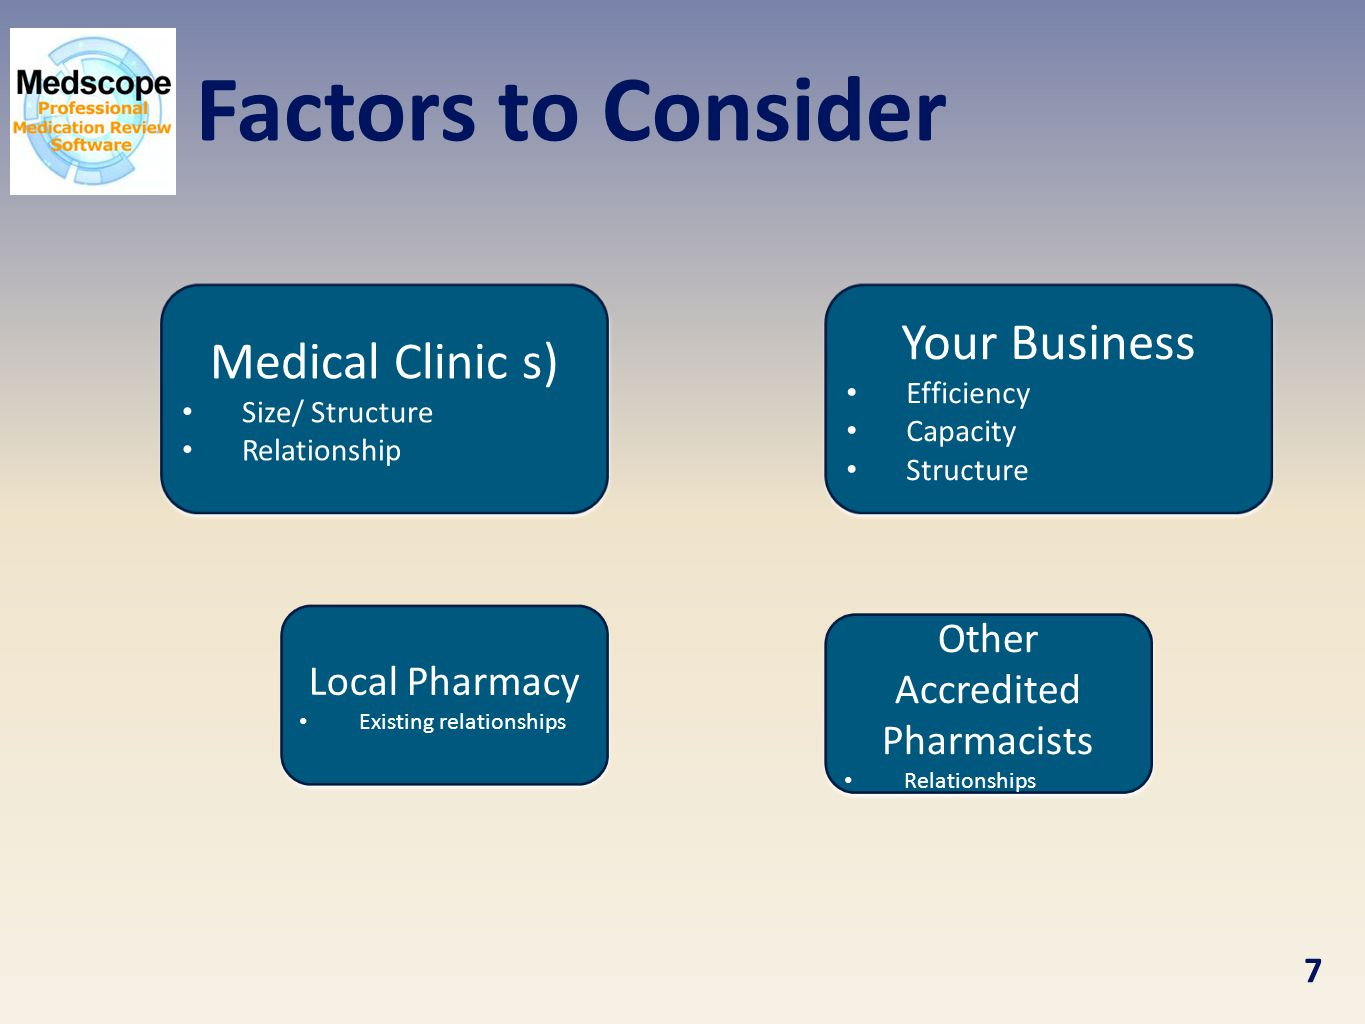 Other Accredited Pharmacists